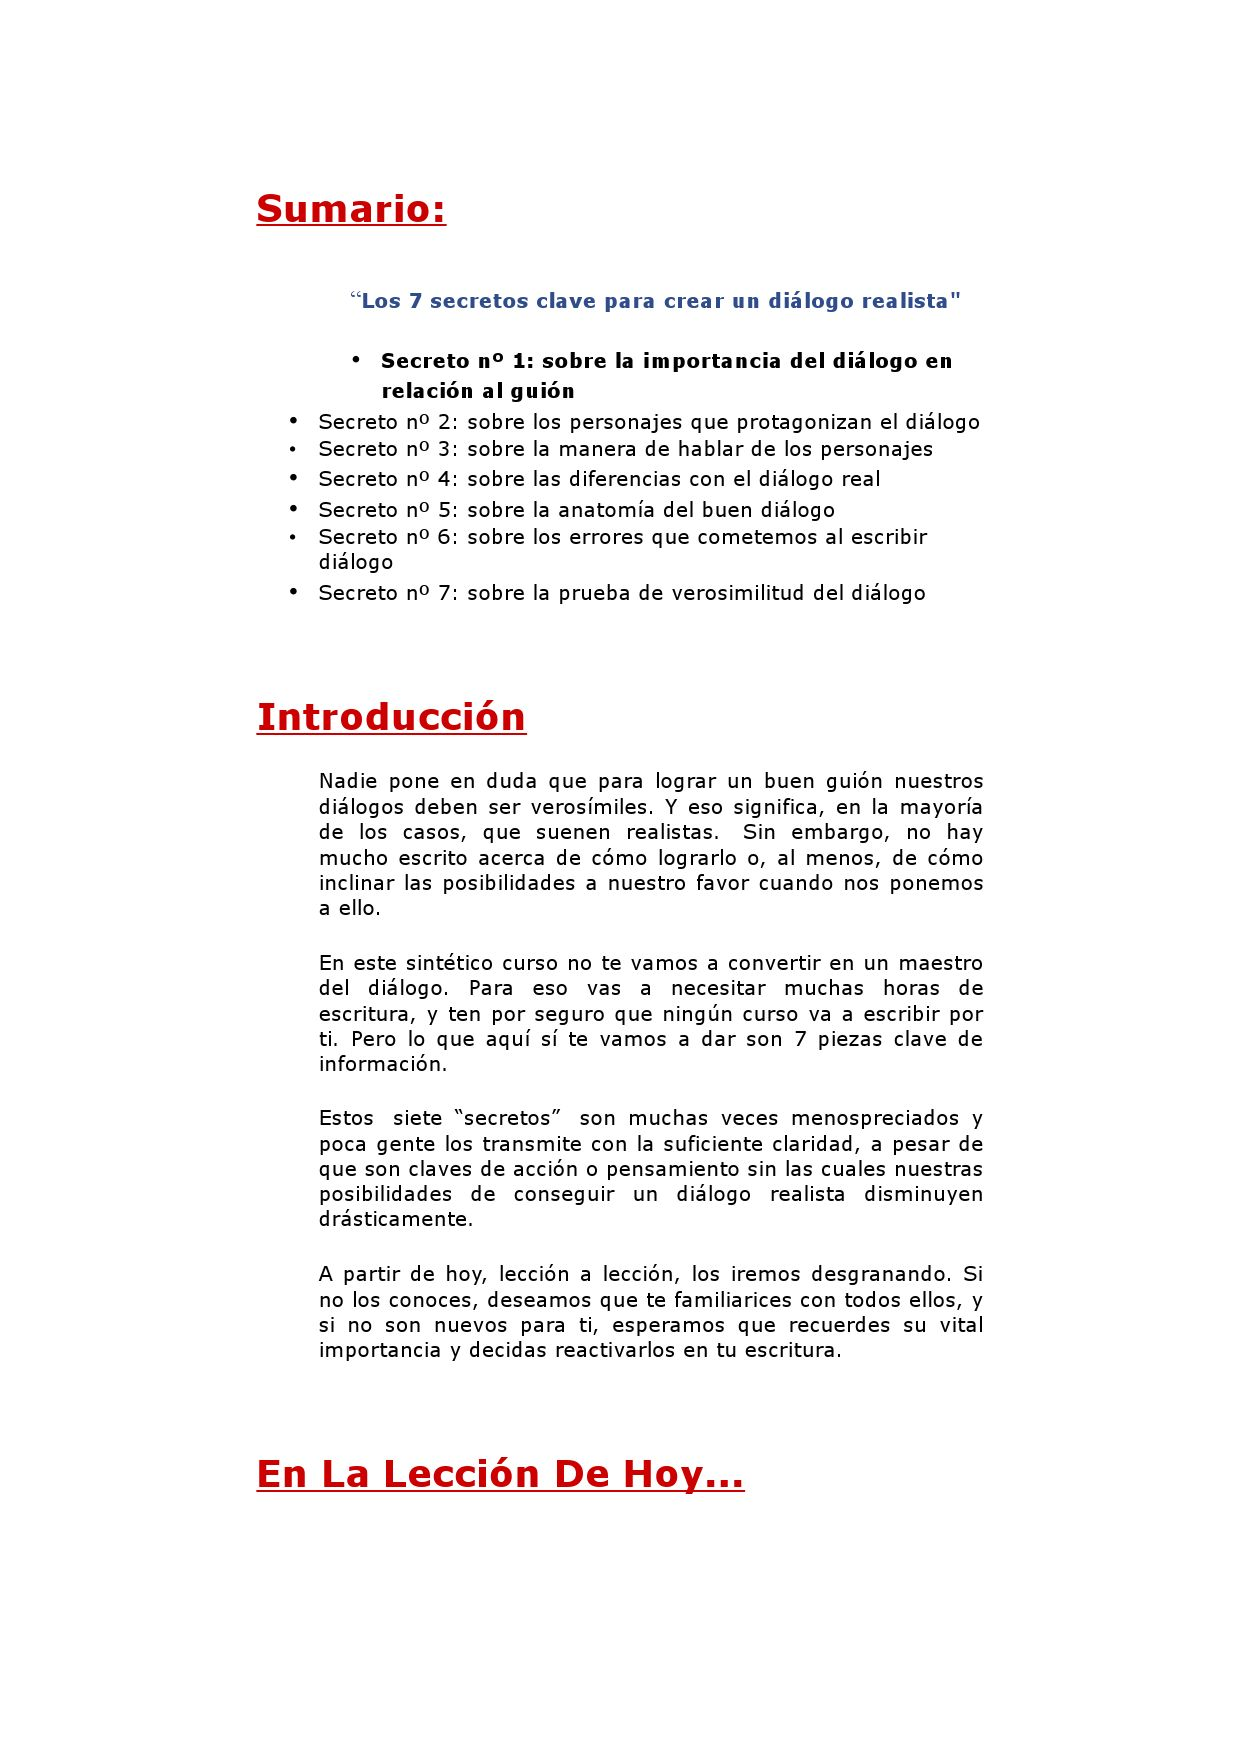 Curso De Guion by Juan Esteban - issuu